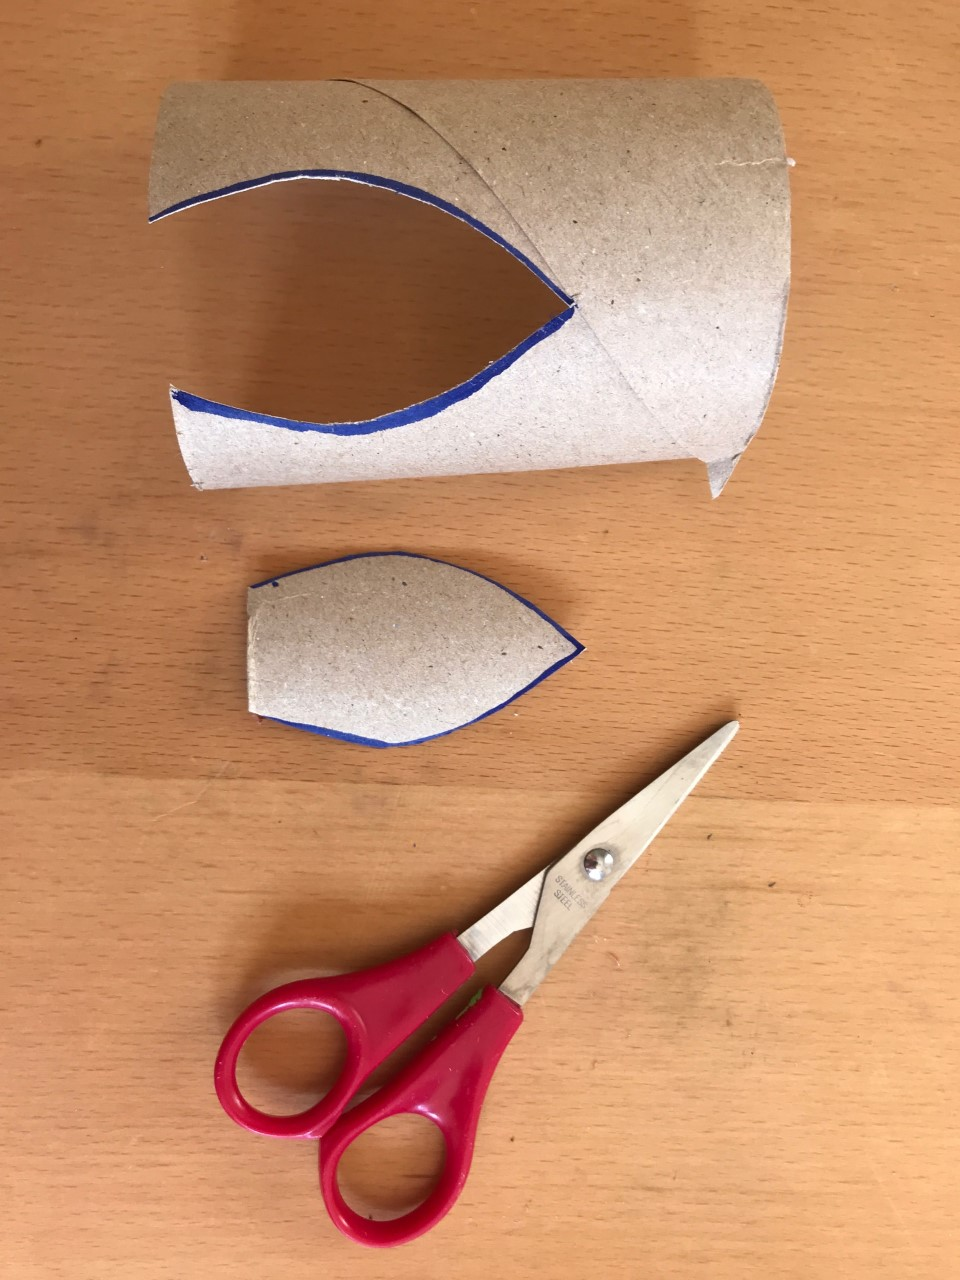 Image shows a leaf shape cut out of a loo roll. The cut out piece is next to the tube and a pair of red scissors lie nearby.